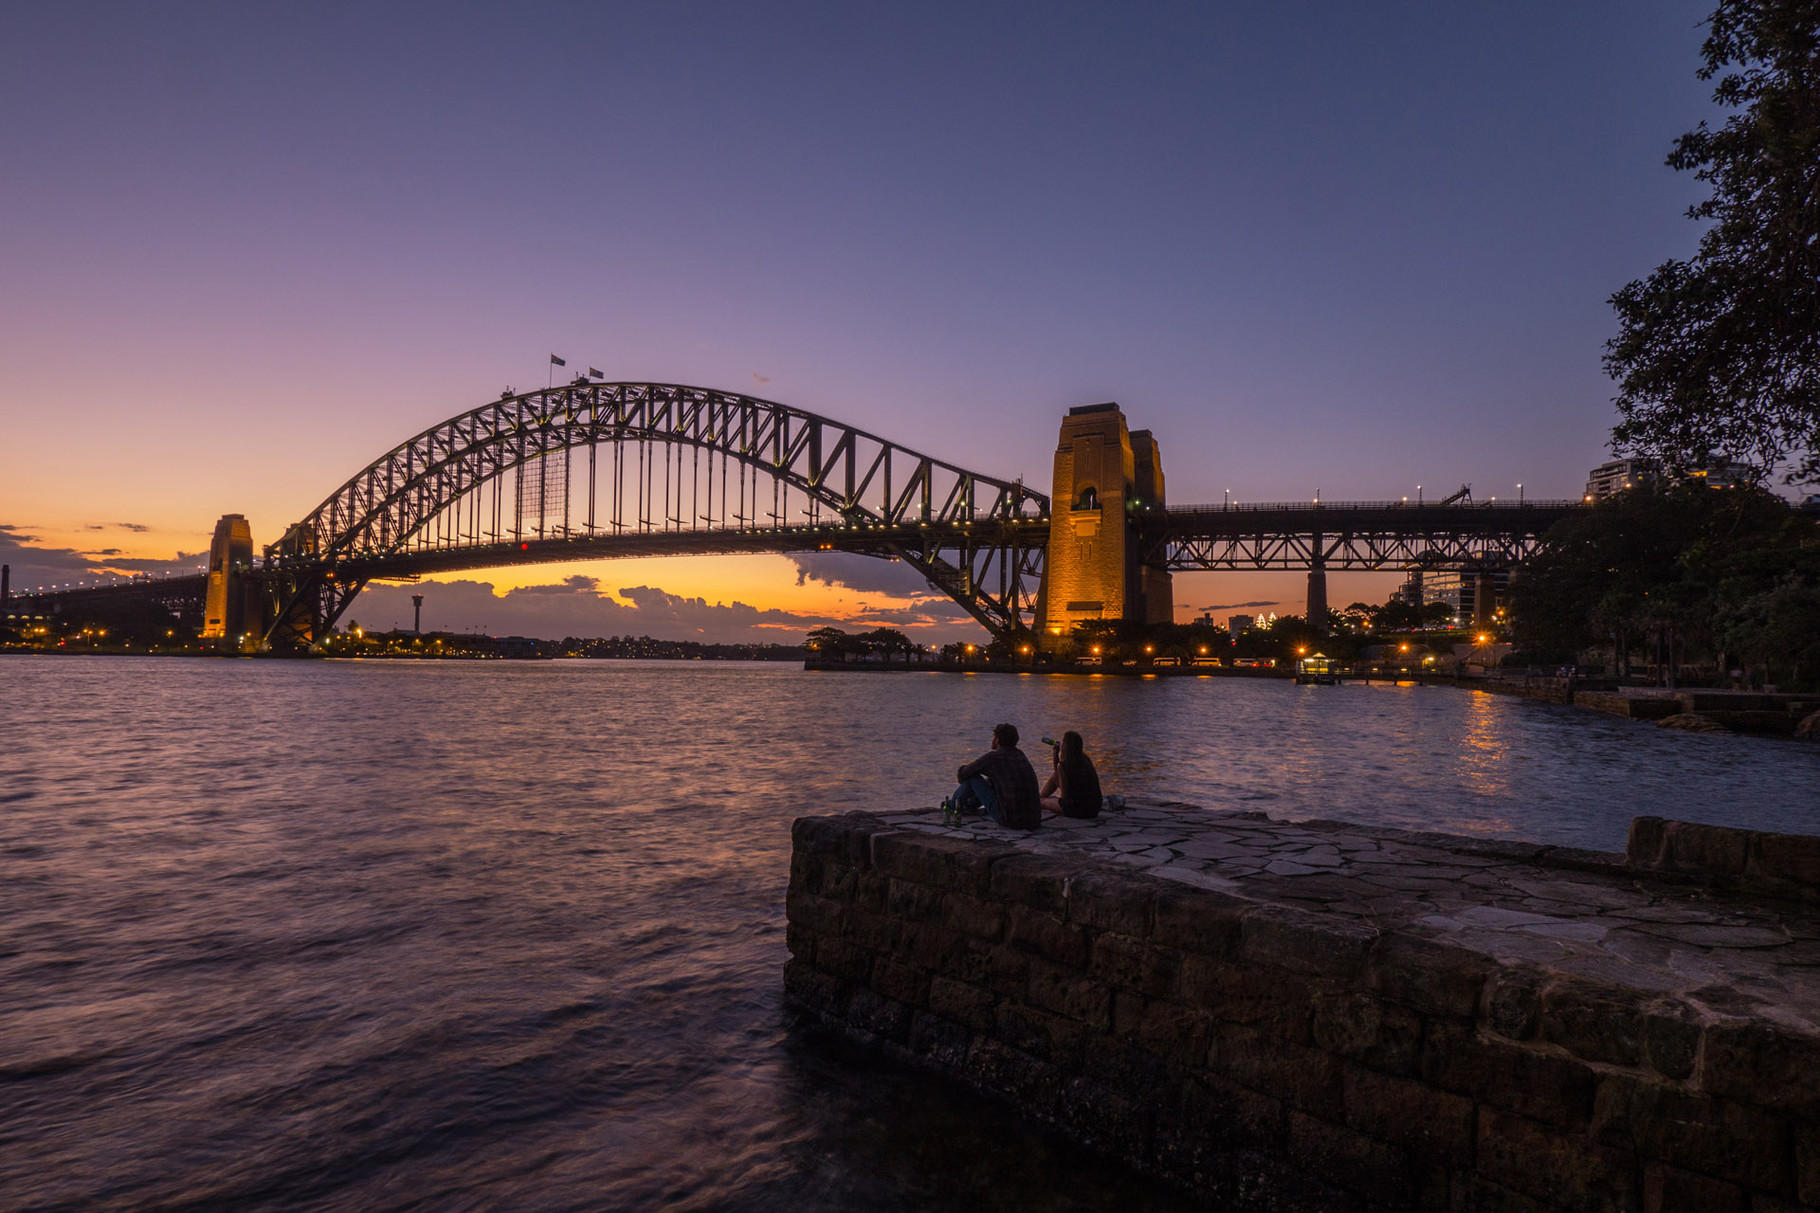 Harbour bridge at dusk, Sydney [Australia, 2014]